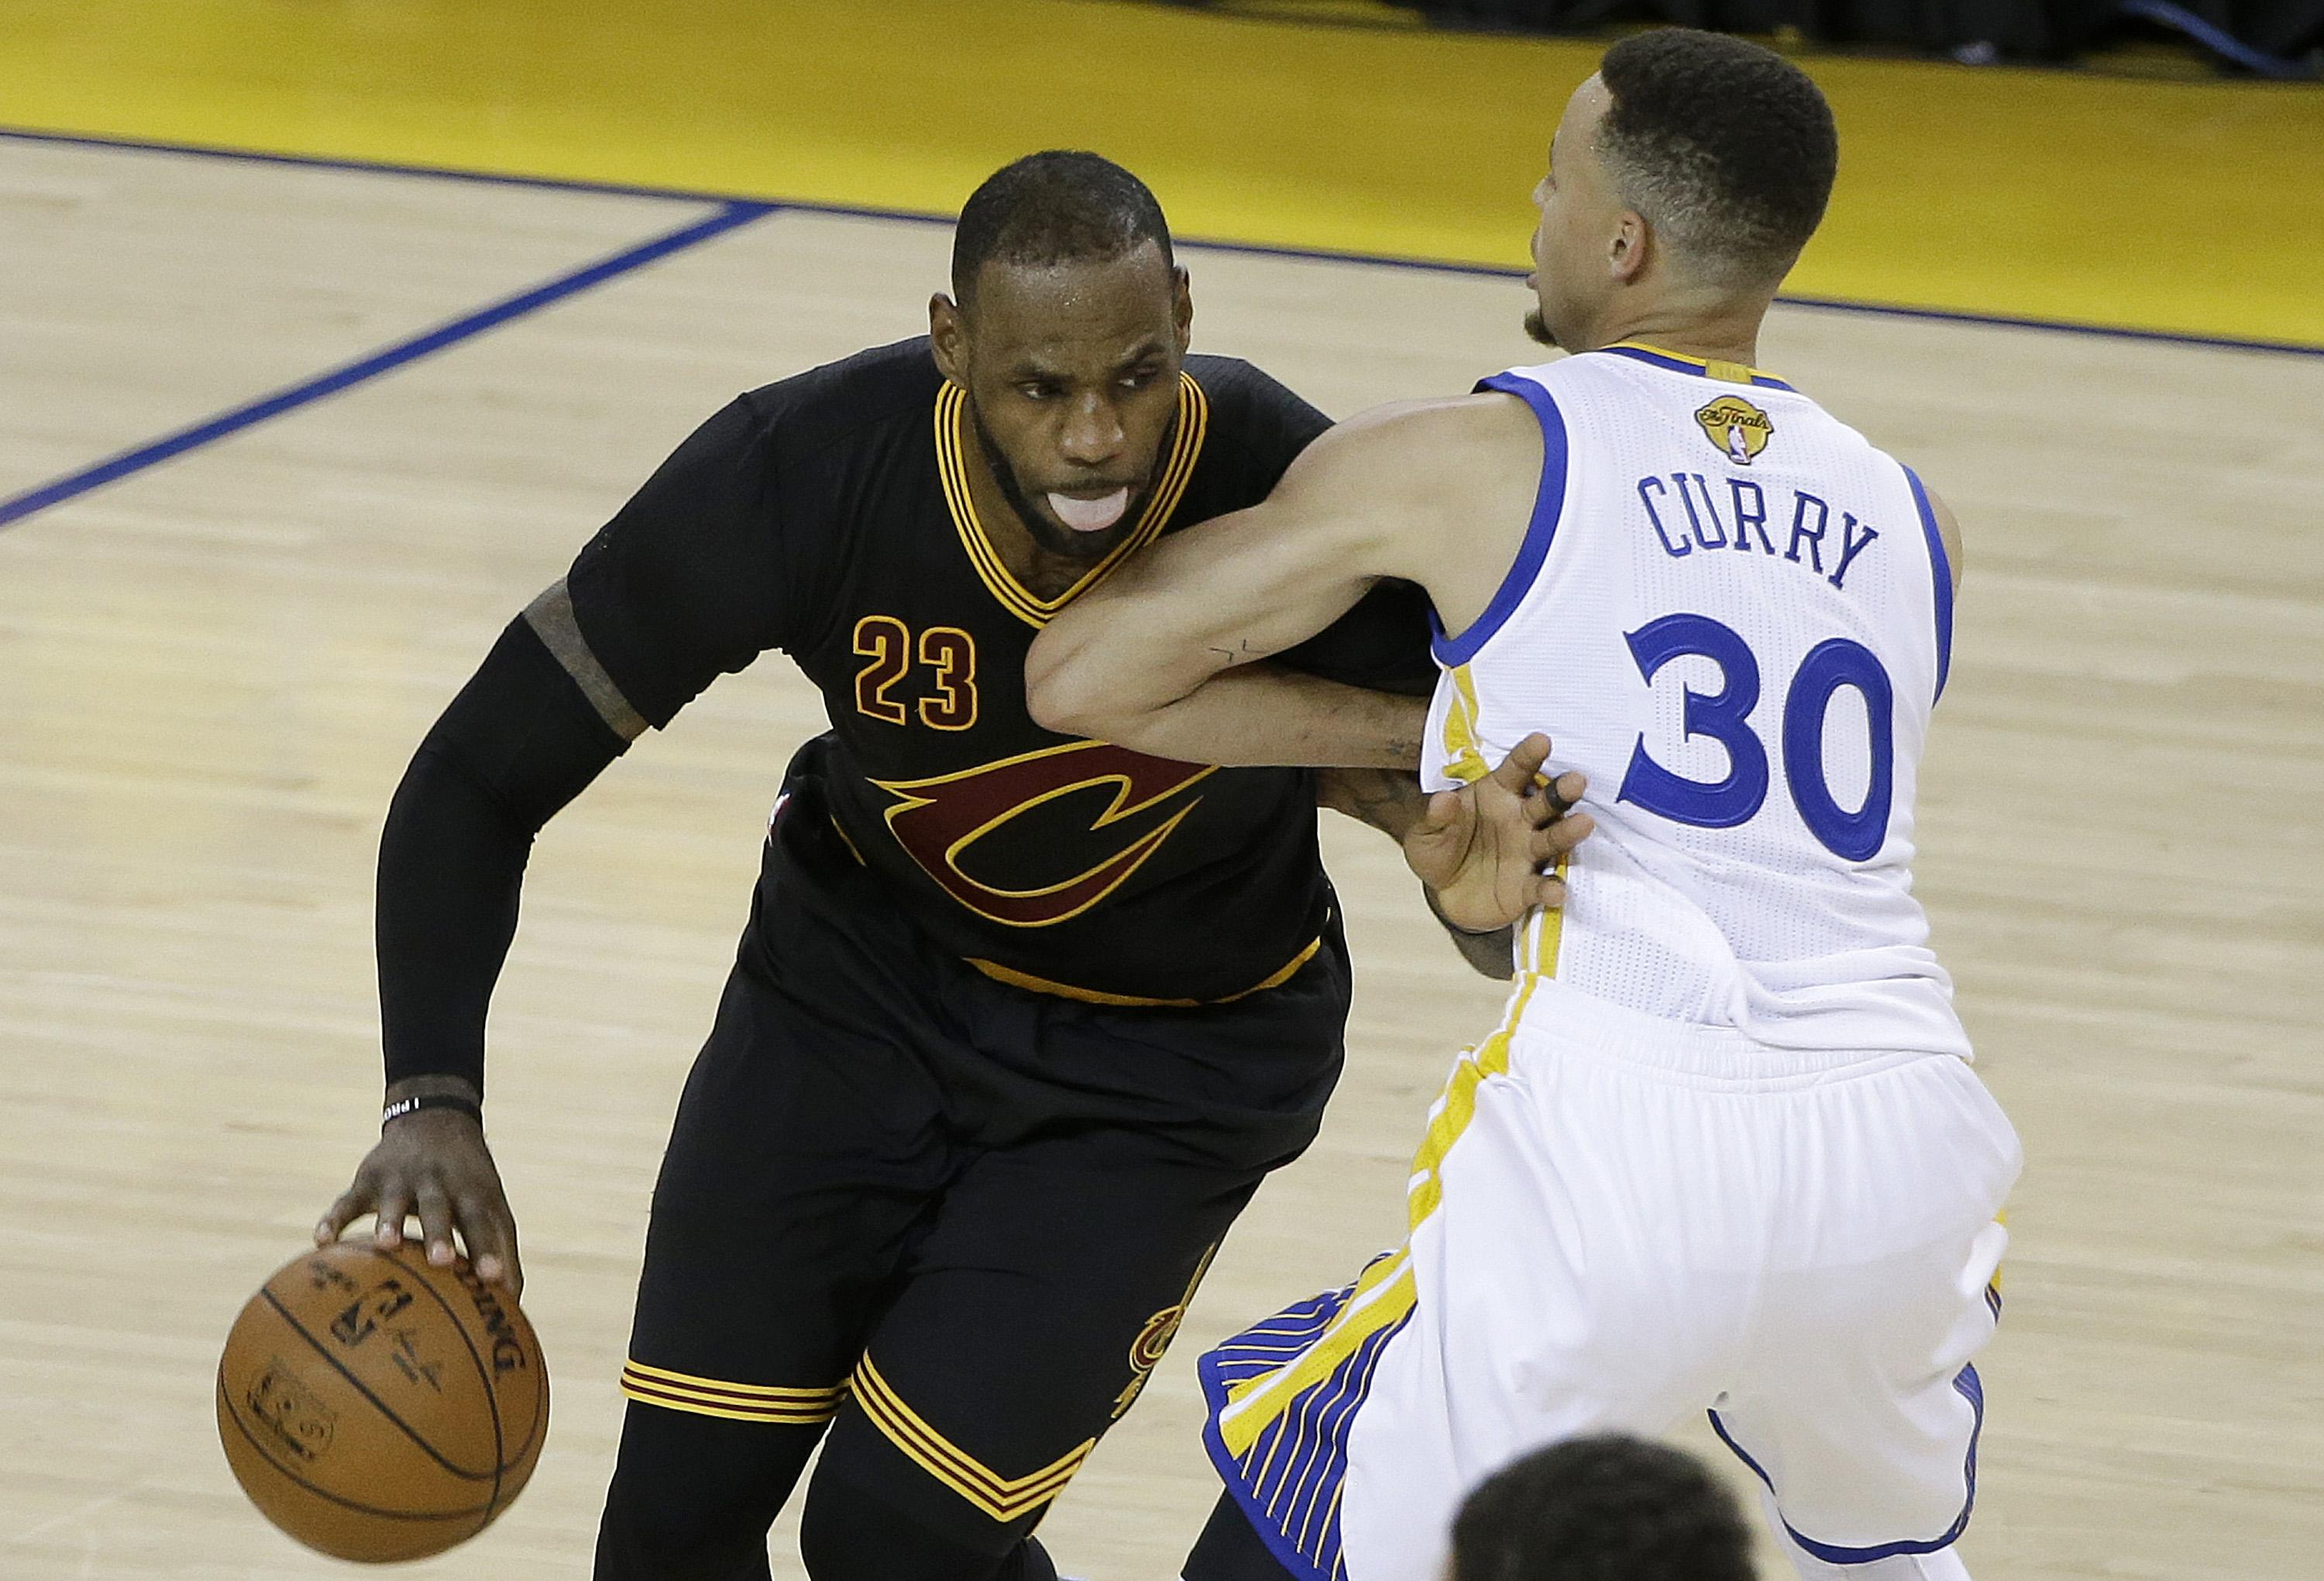 924483cae4cd Cleveland Cavaliers forward LeBron James dribbles against Golden State  Warriors guard Stephen Curry during the second